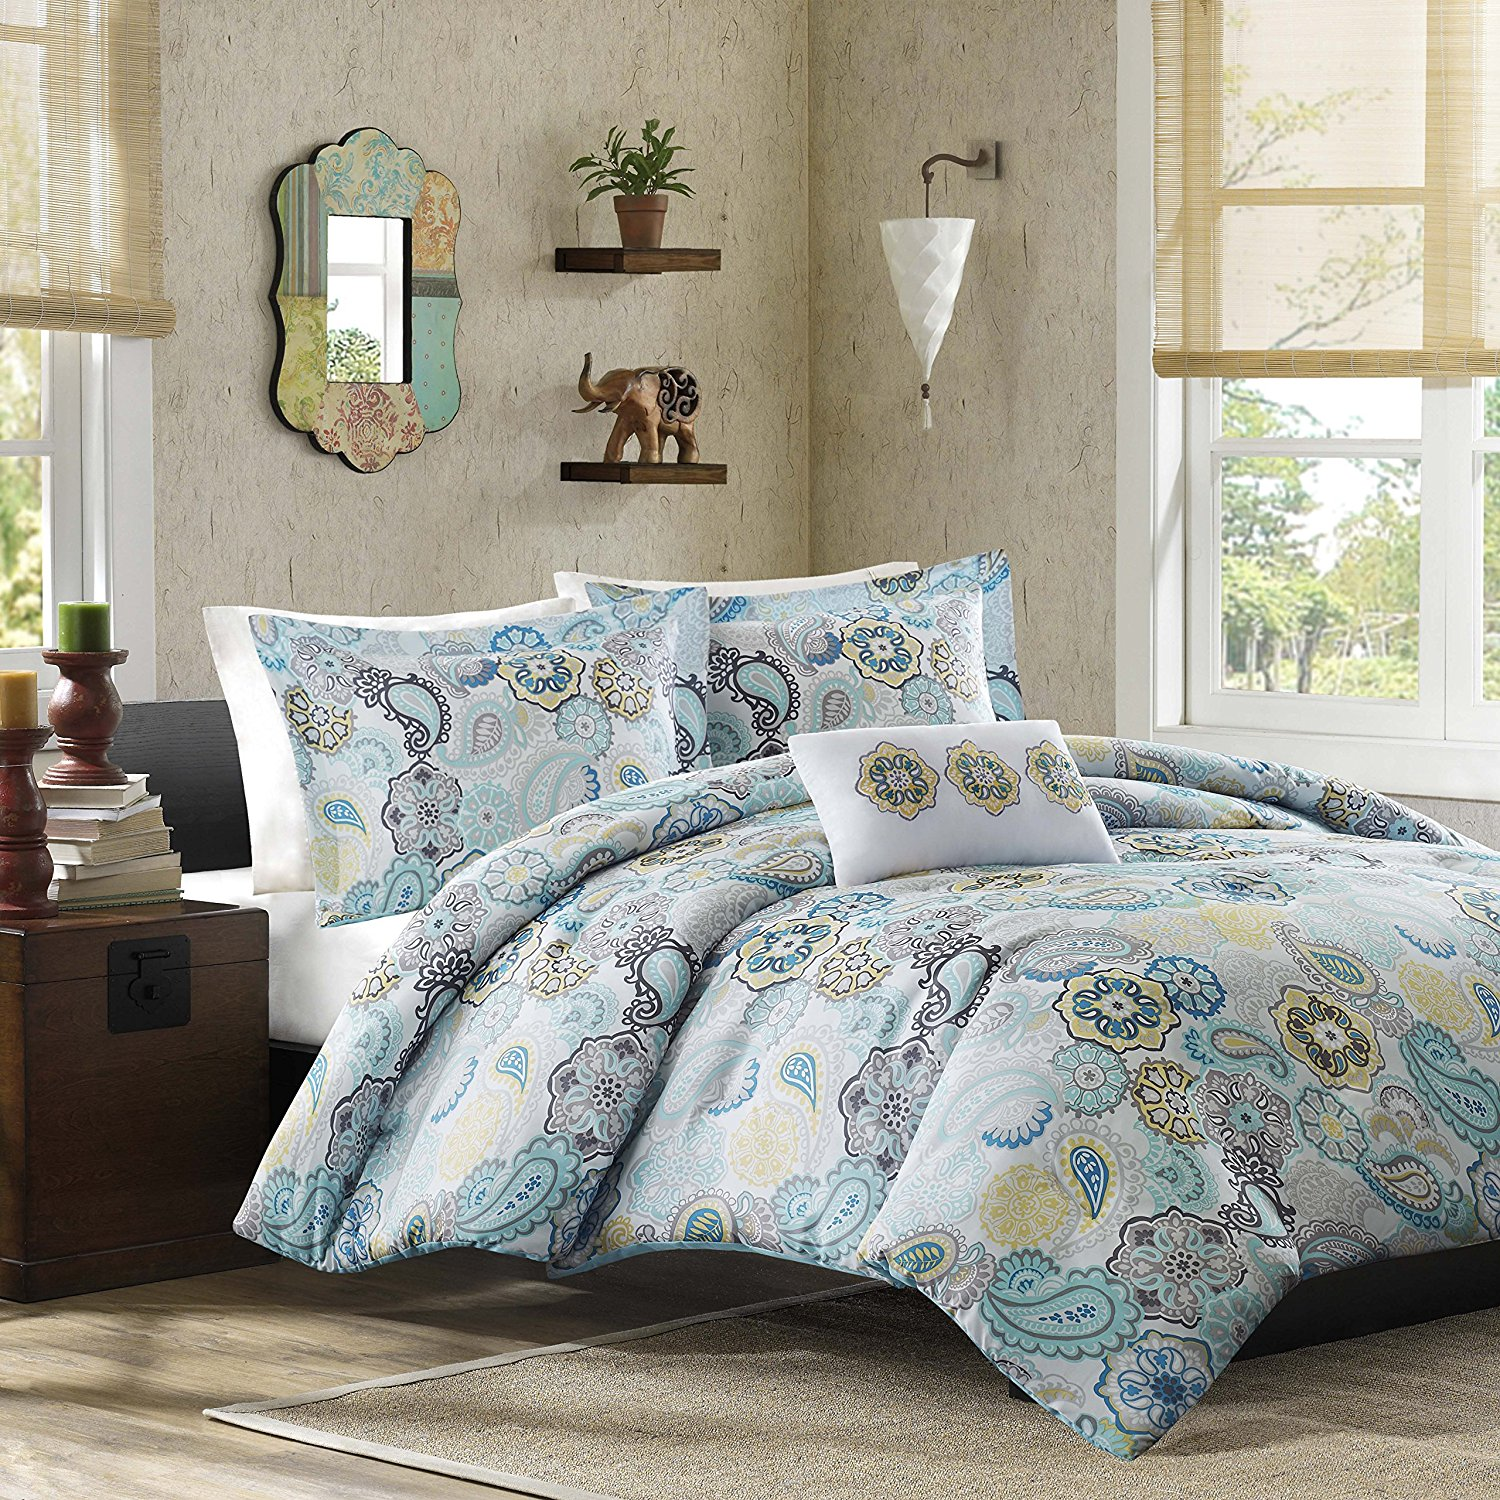 Queen Comforter Sets | Queen Bedspreads | Nautical Bedspreads Queen